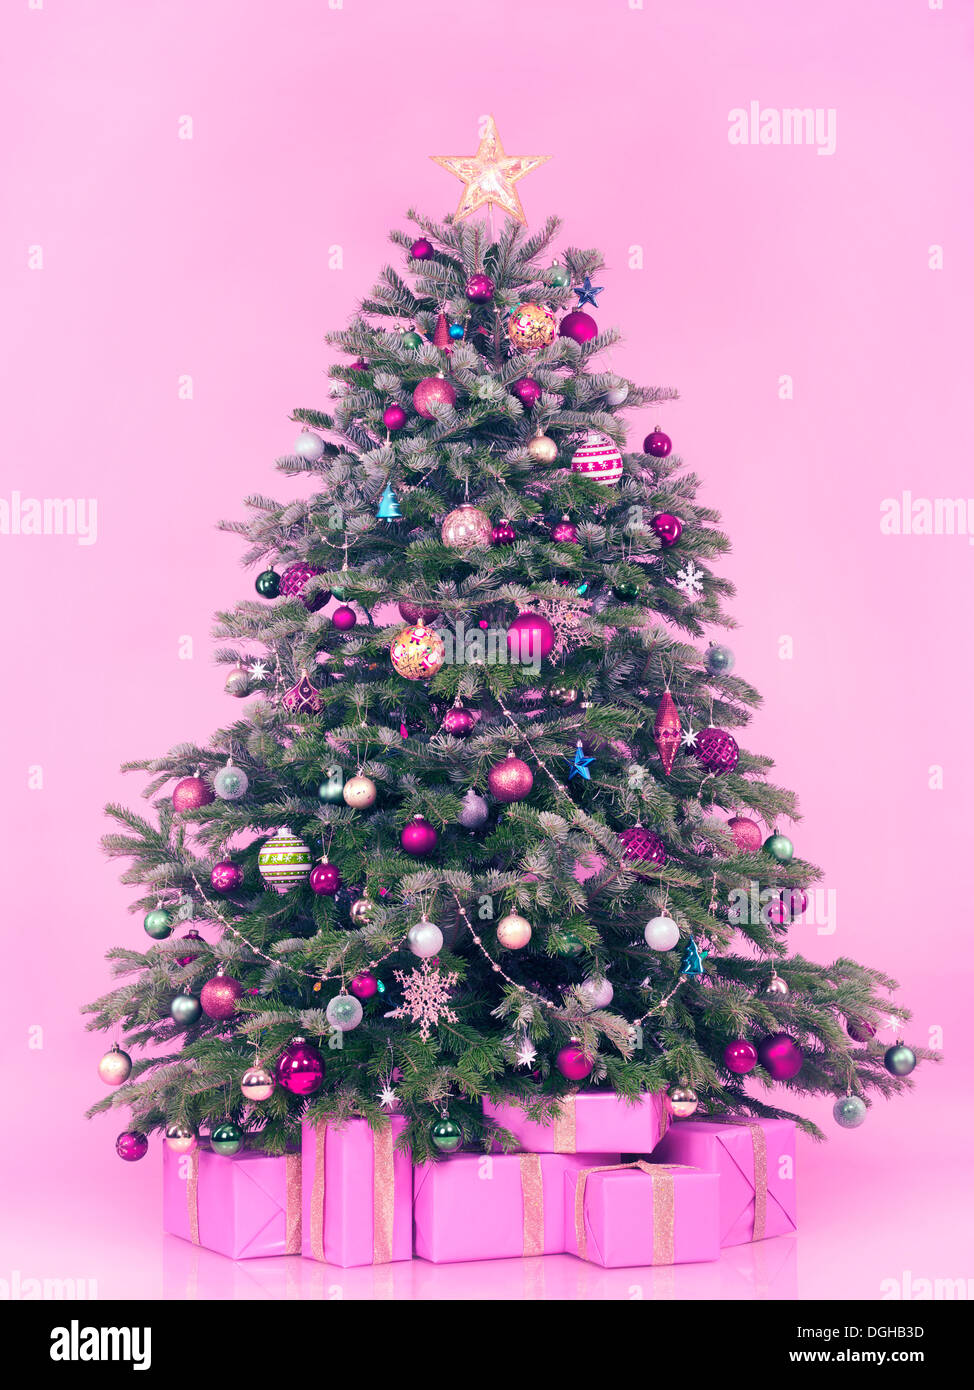 Christmas Trees Decorated Pink - Decorated christmas tree with presents and gift boxes isolated on pink background in pastel colors with